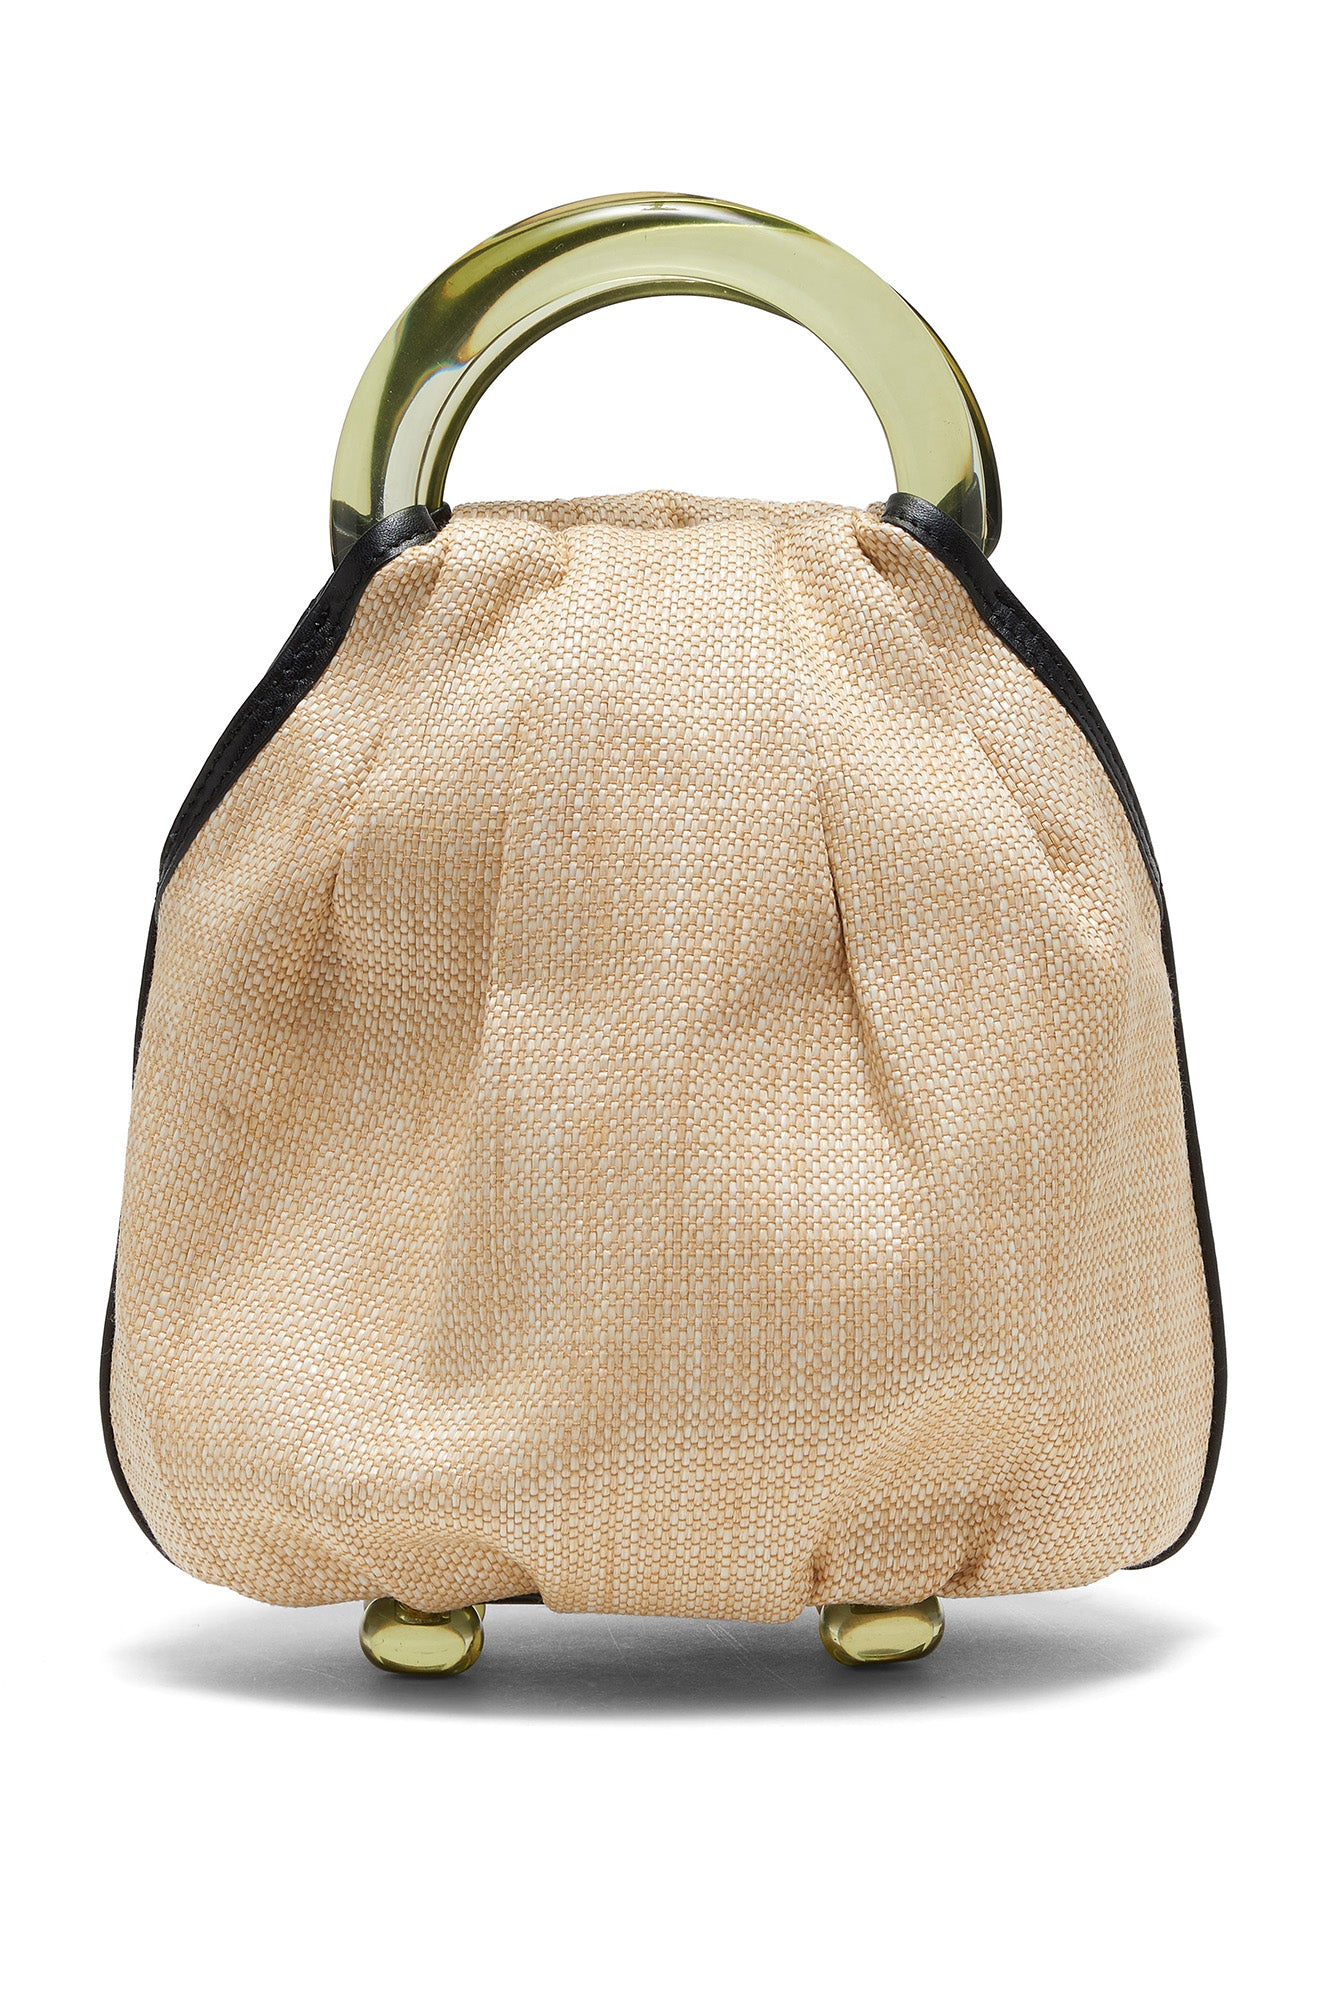 Lizzie Fortunato - alpine bag, Oatmeal